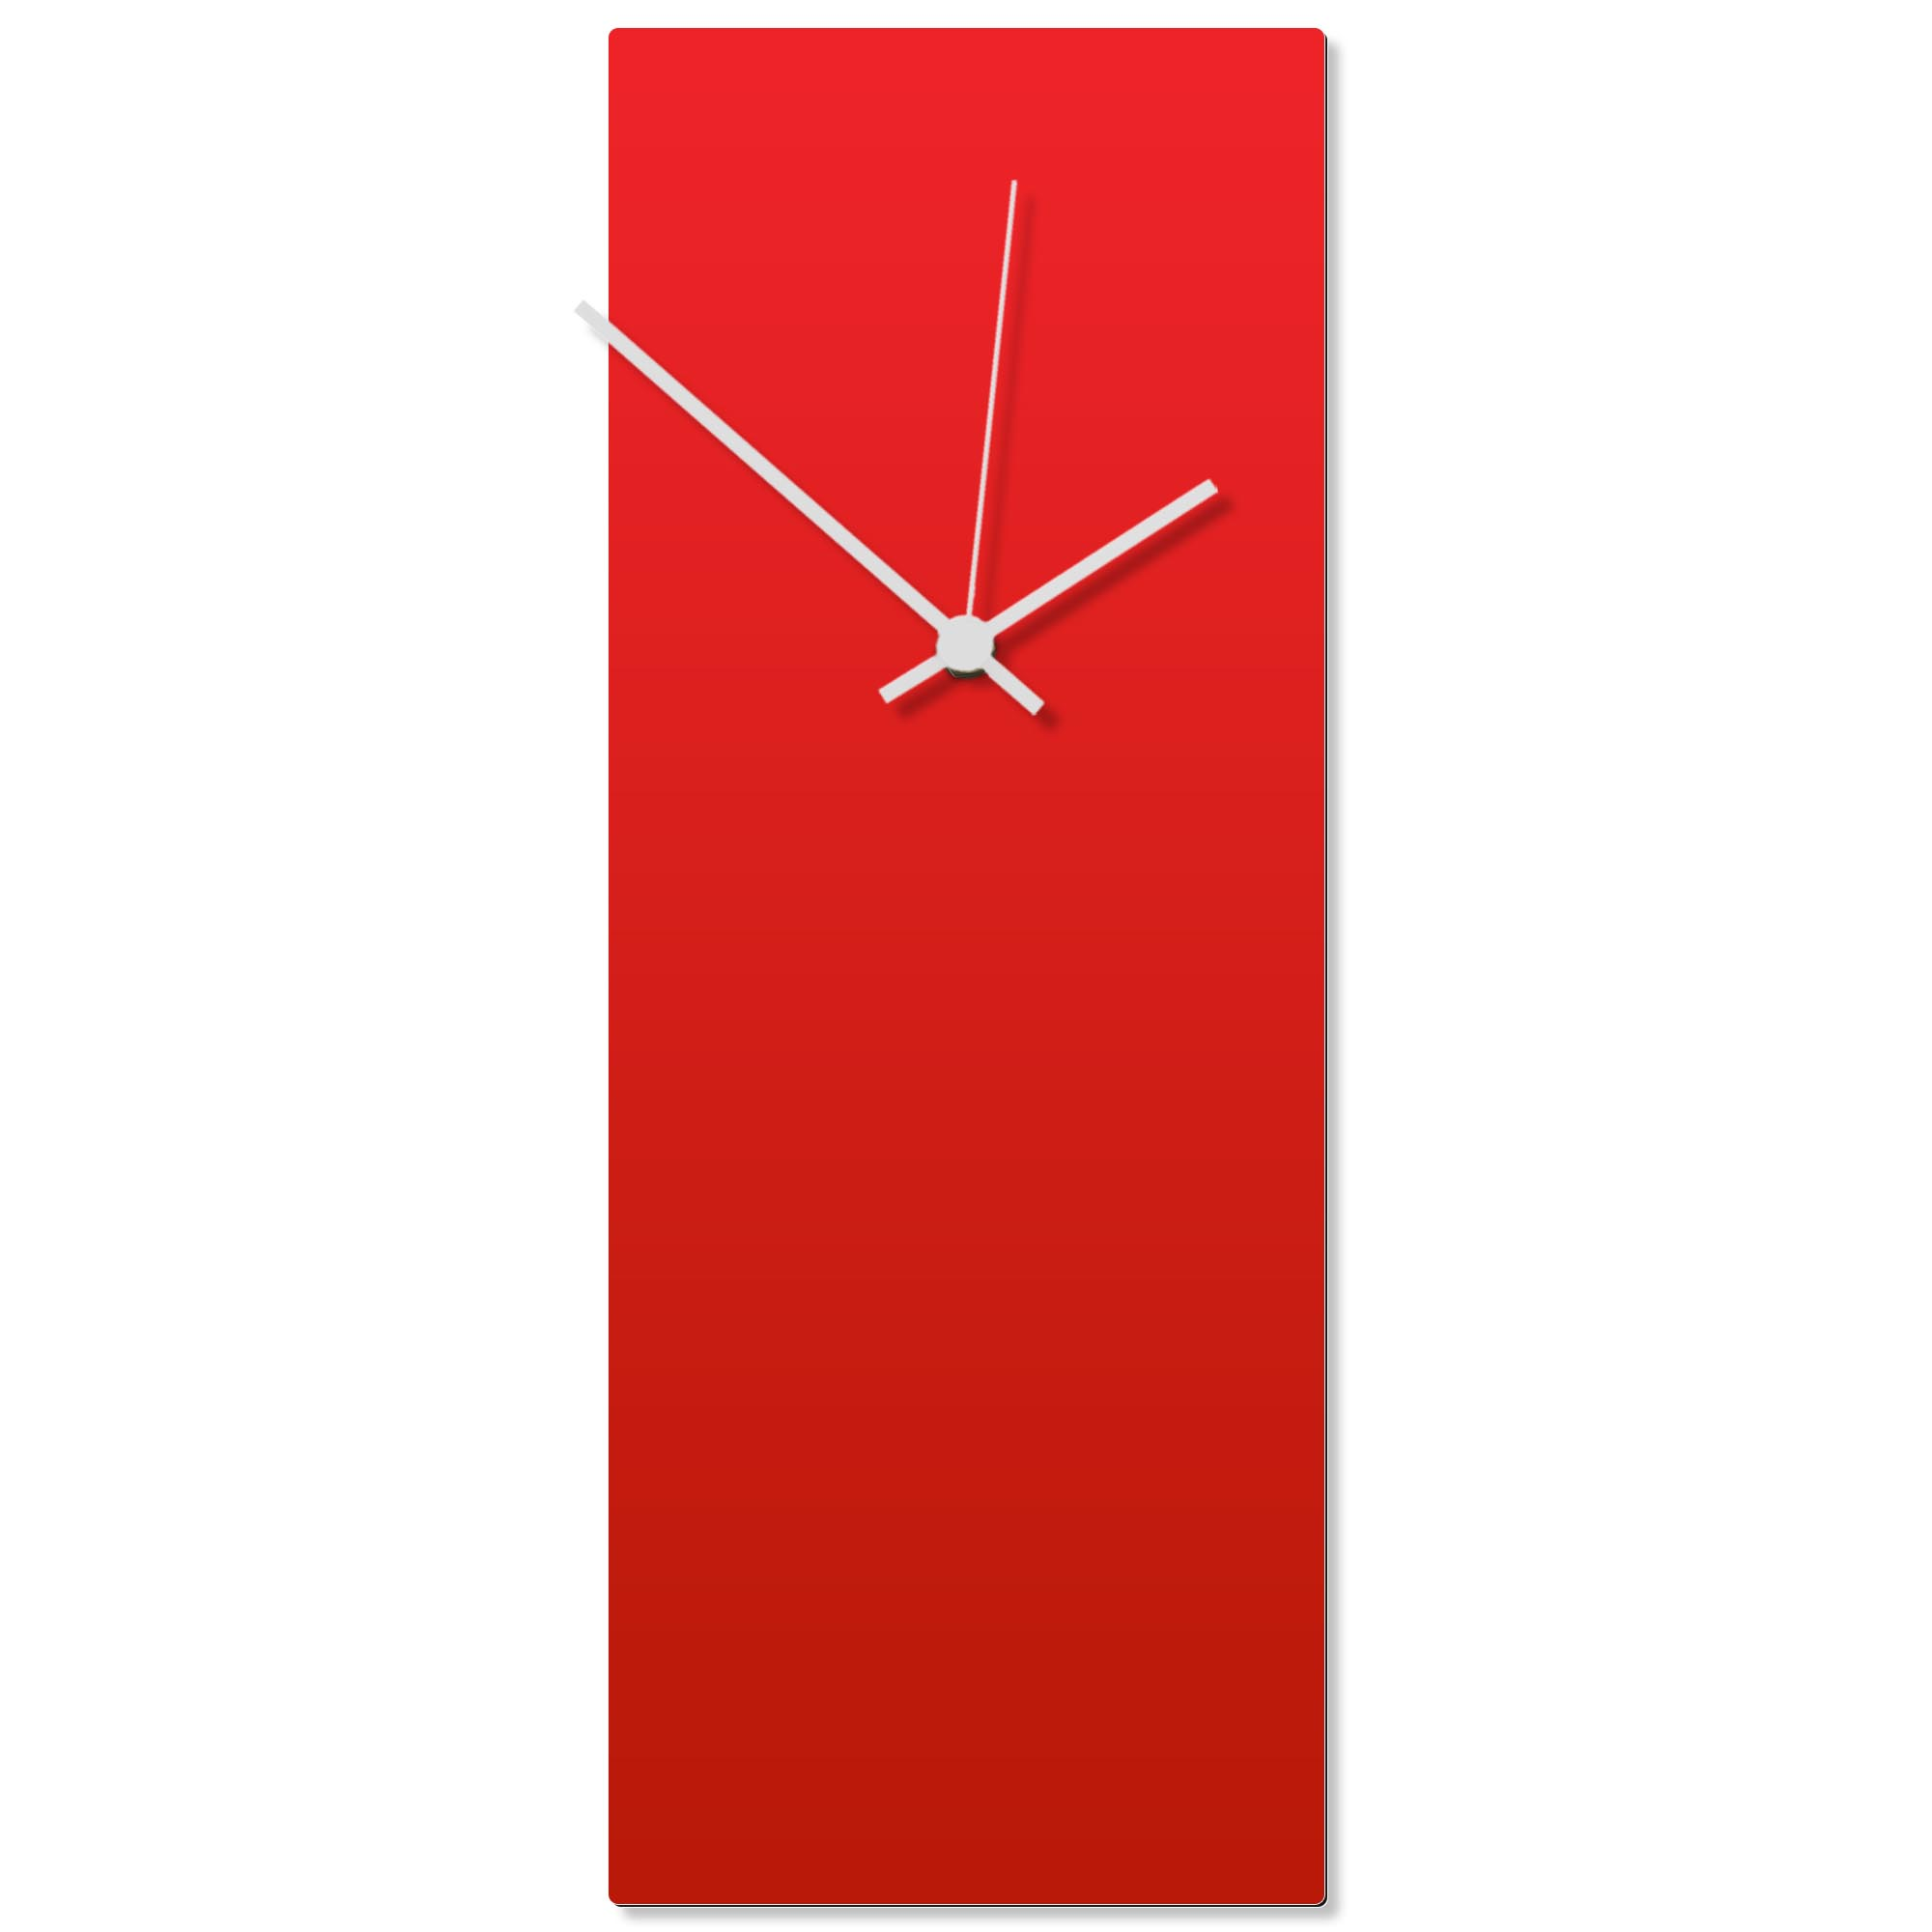 Redout White Clock Large 8.25x22in. Aluminum Polymetal